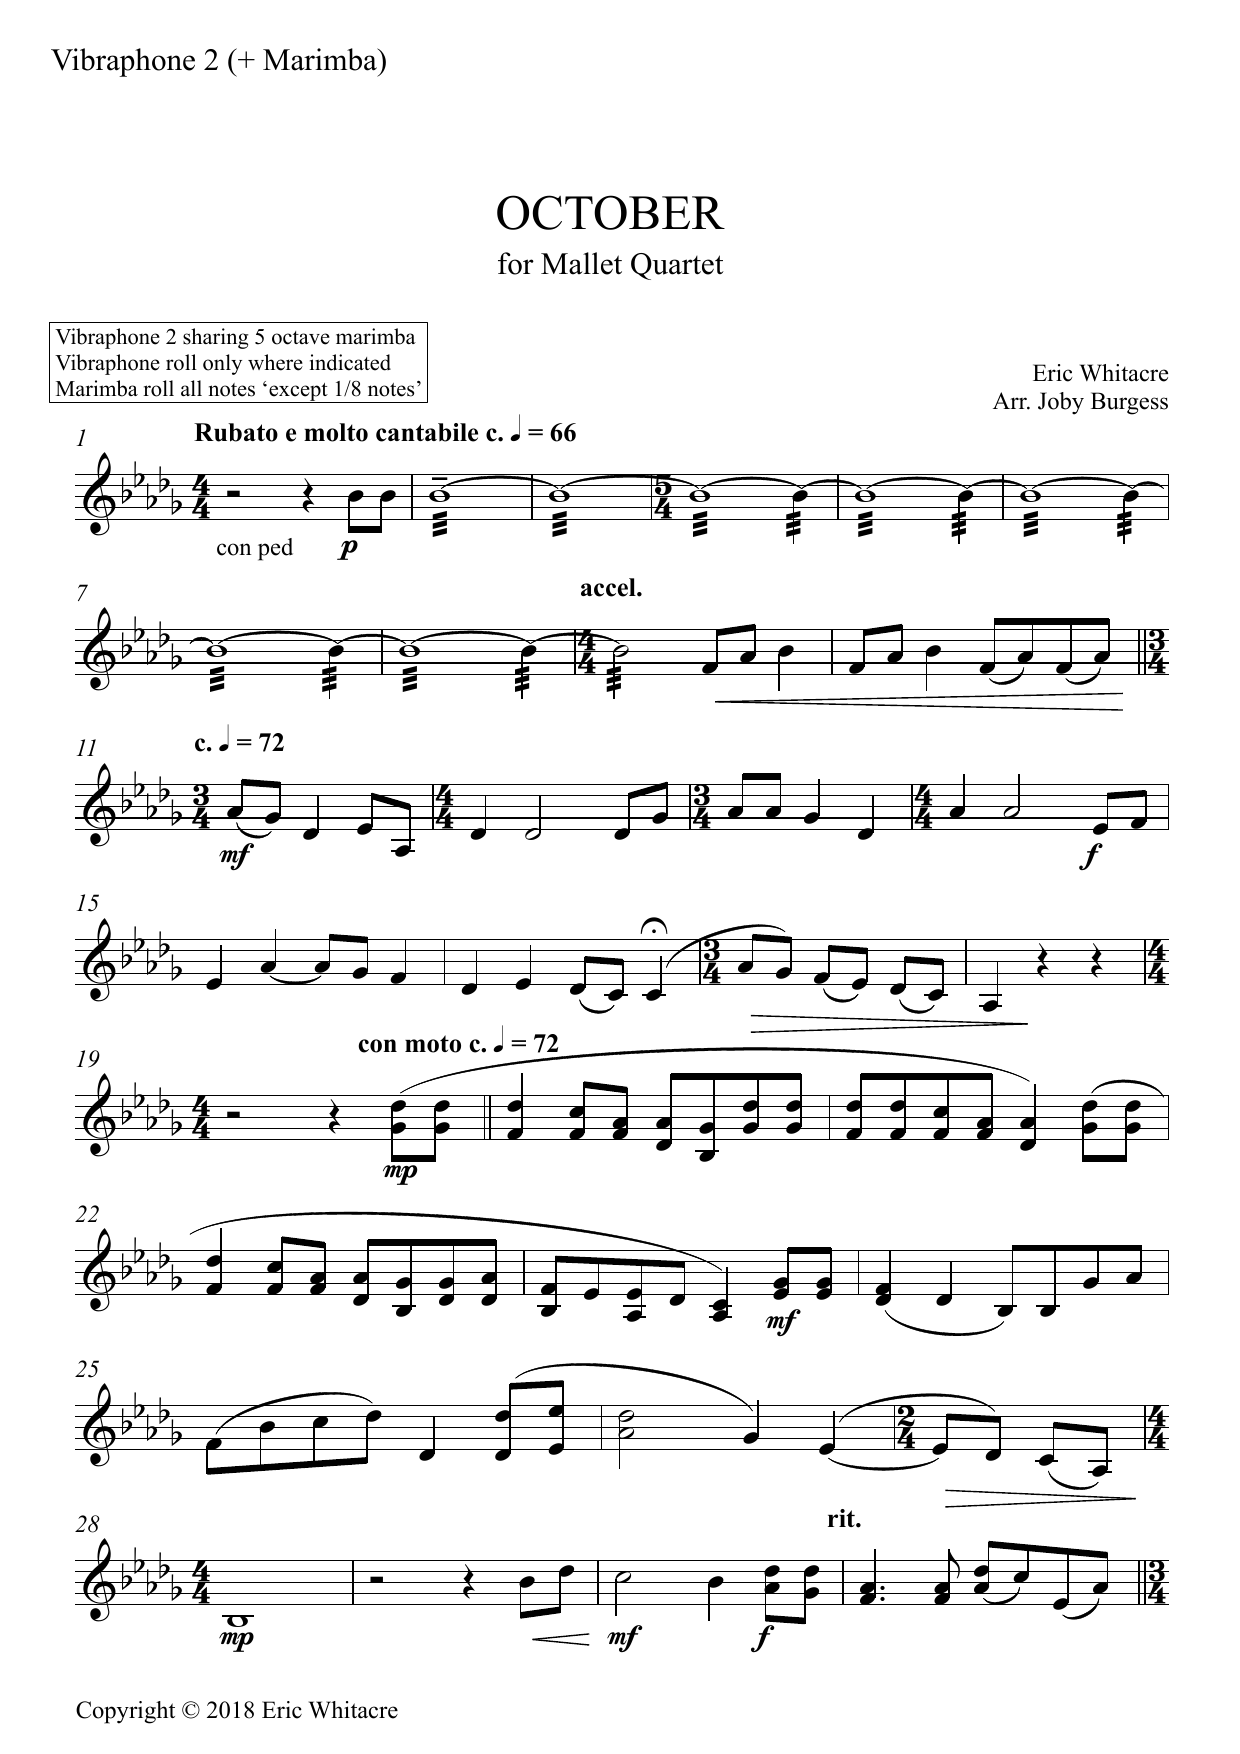 October (Alleluia) for Mallet Quartet (arr. Joby Burgess) - VIBRAPHONE 2 SHARE MARIMBA 2 Sheet Music